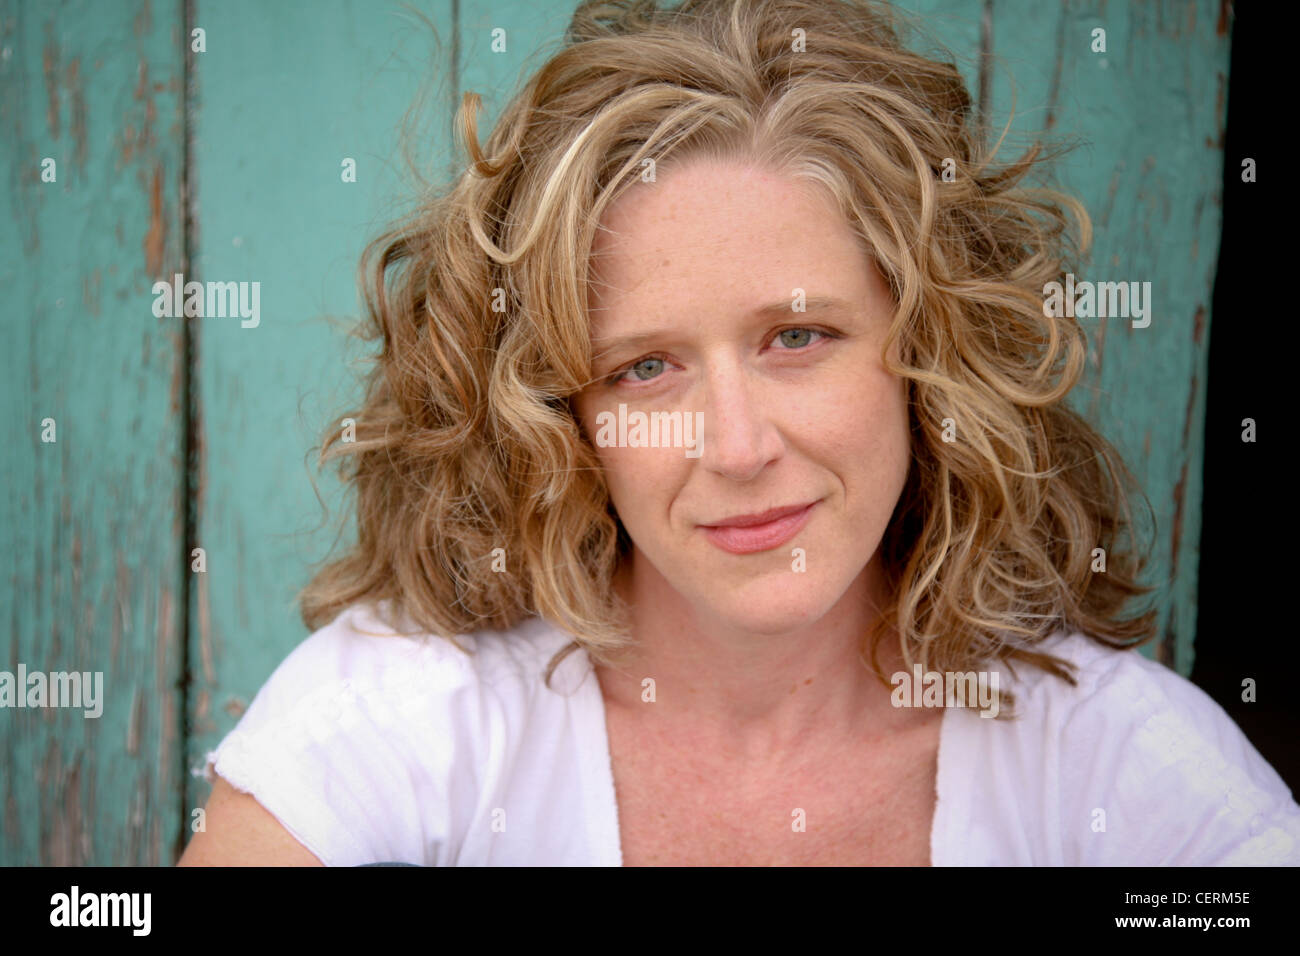 blond woman posing for a headshot - Stock Image